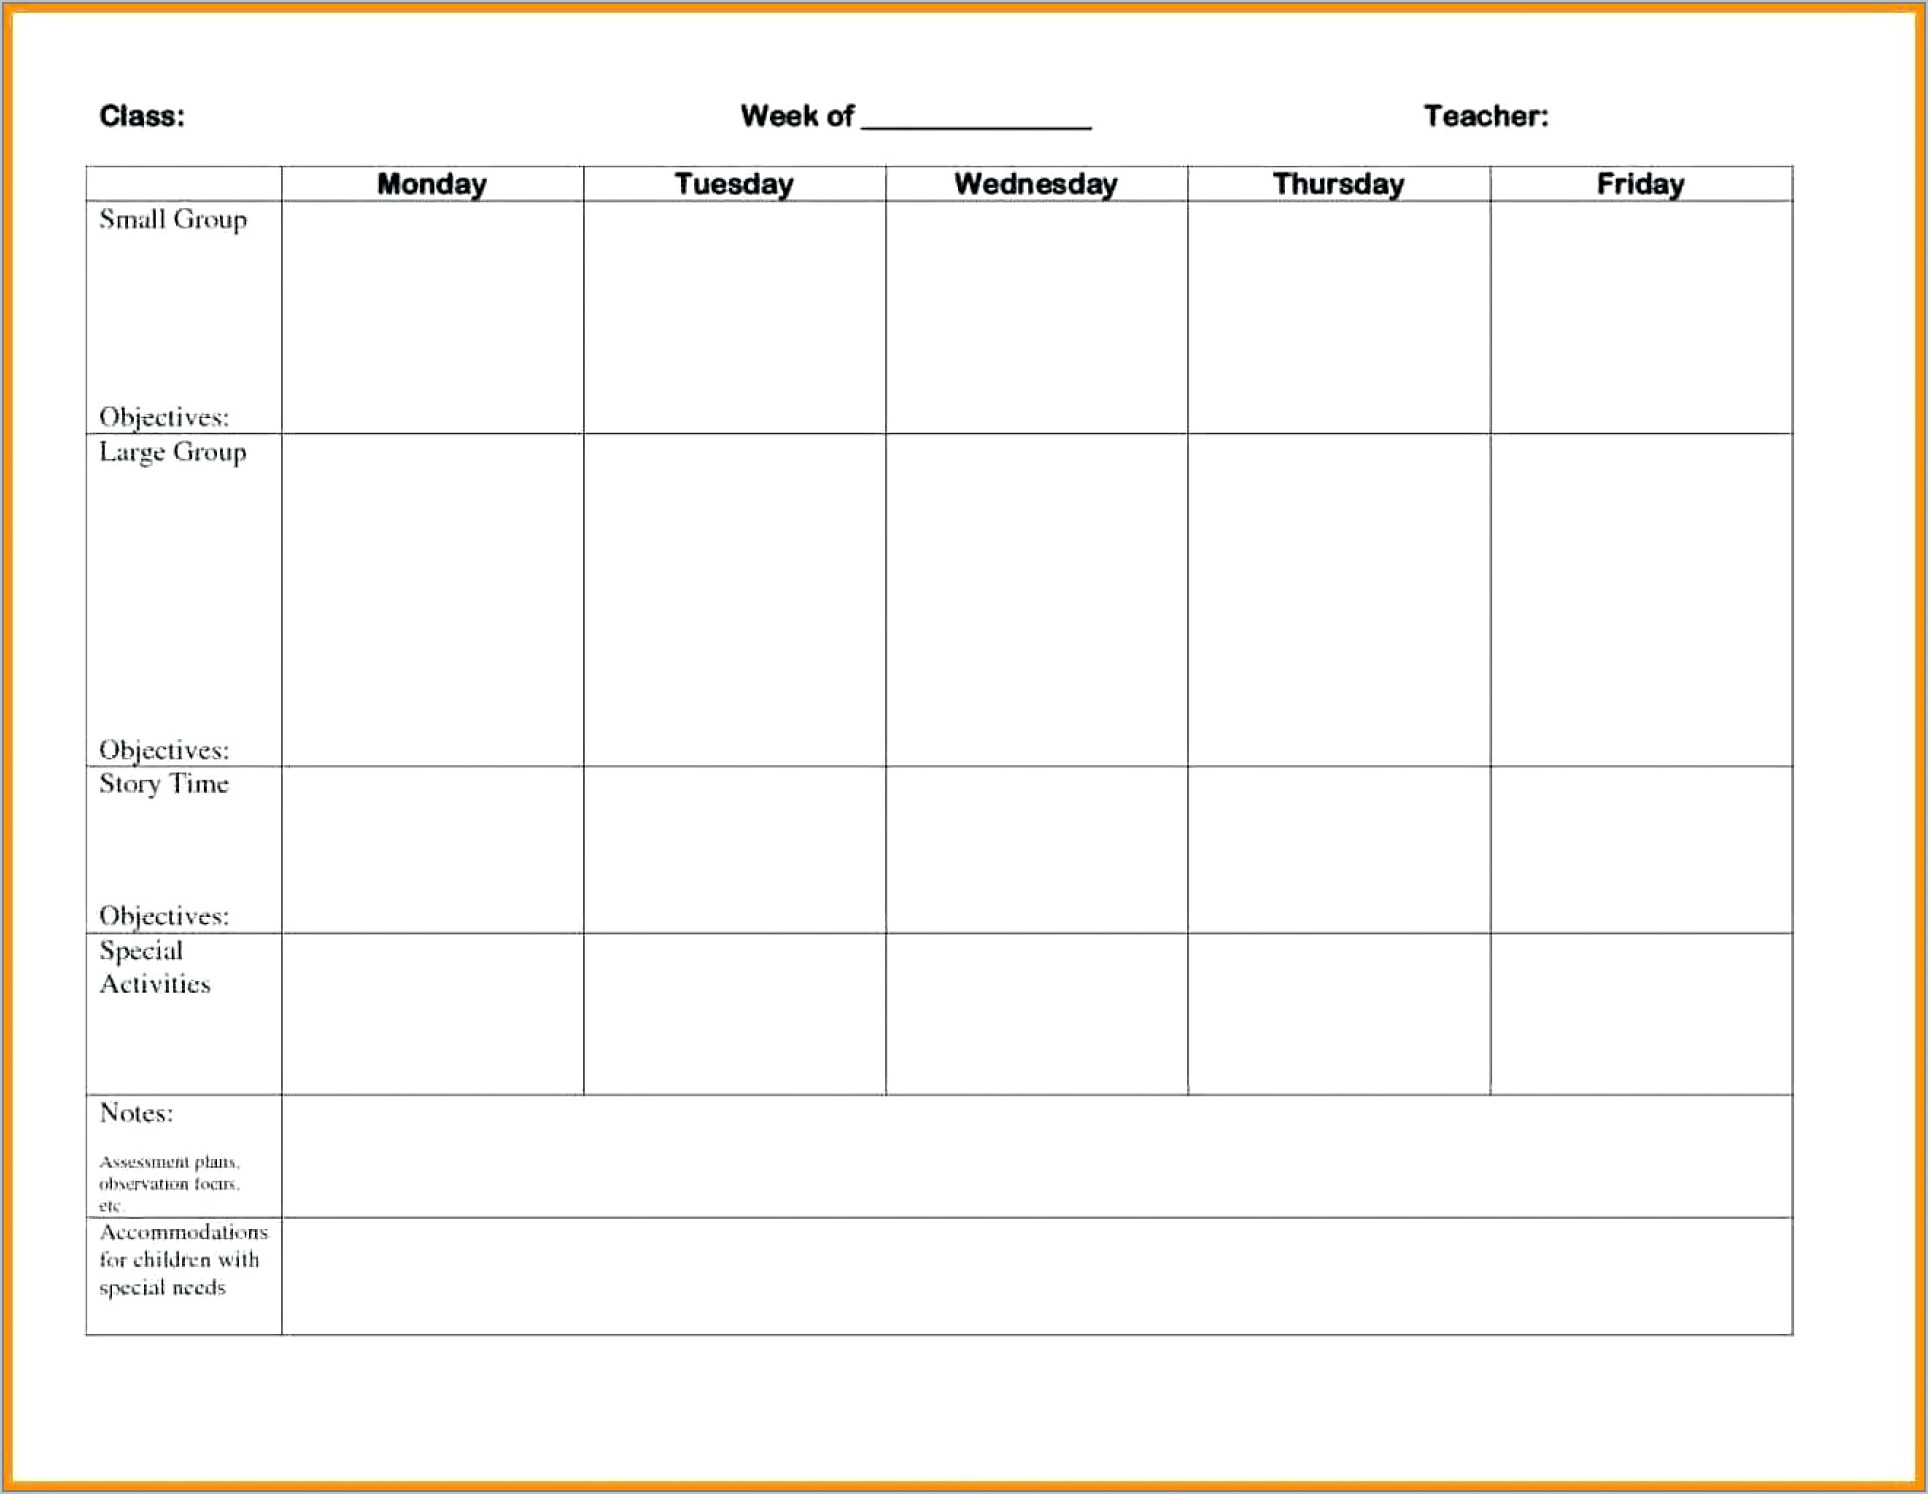 Weekly Training Schedule Template